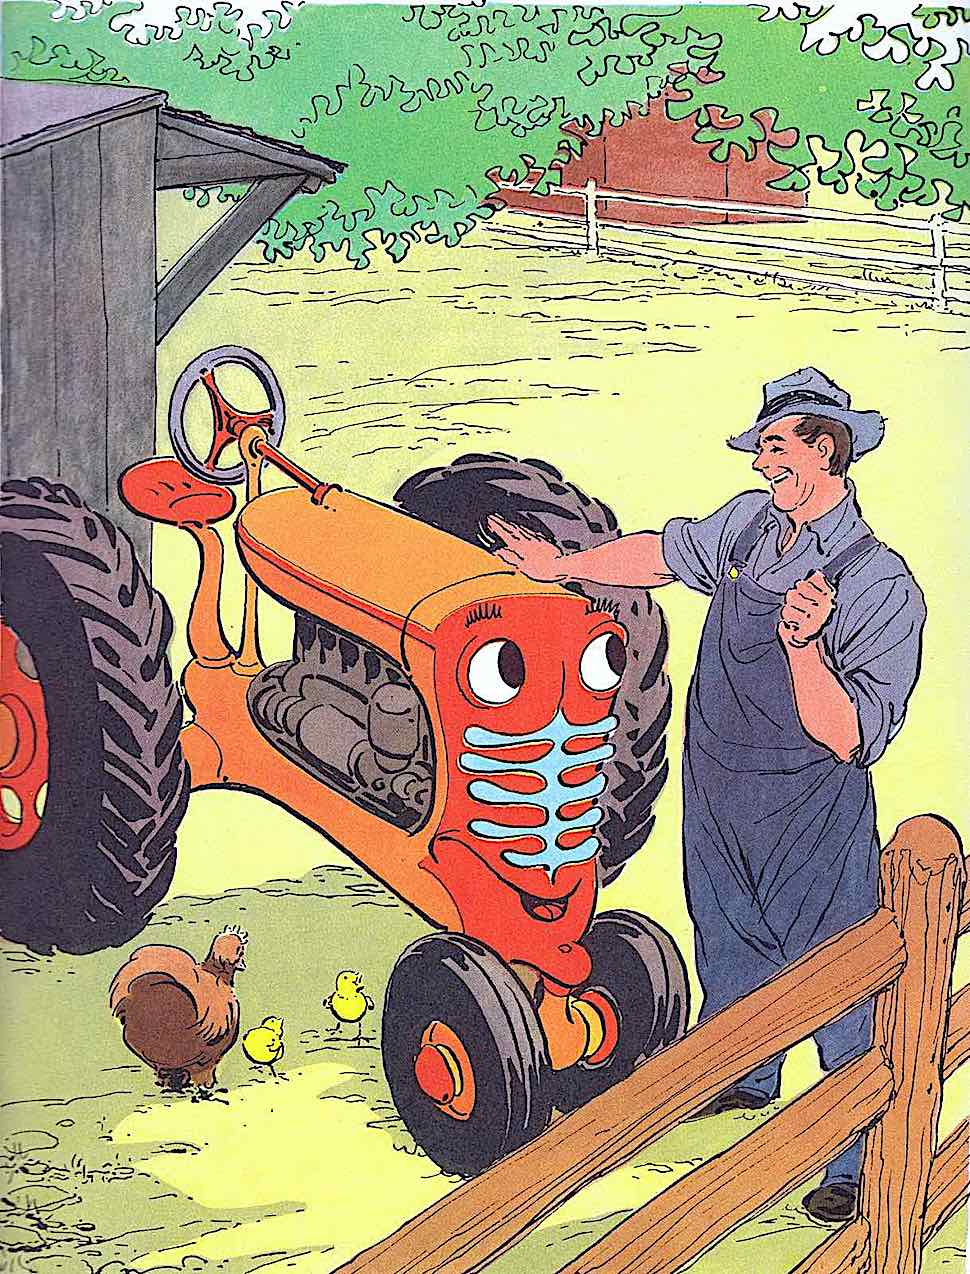 a good little tractor in a Paul Pinson children's book illustration